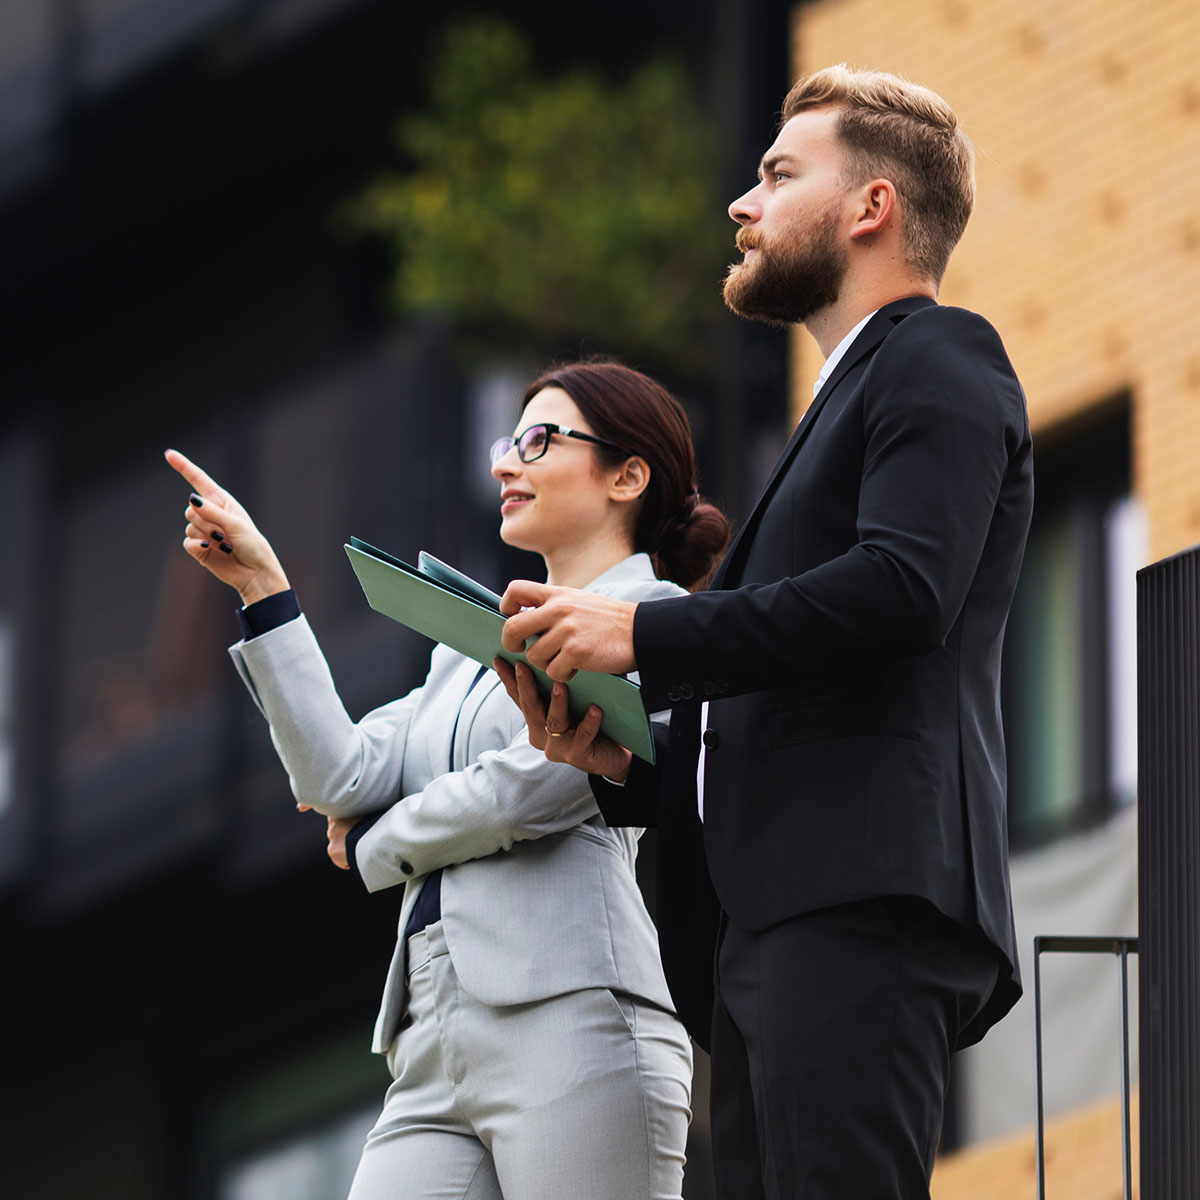 A business woman points something out to her colleague outside. Her colleague is holding some documents.